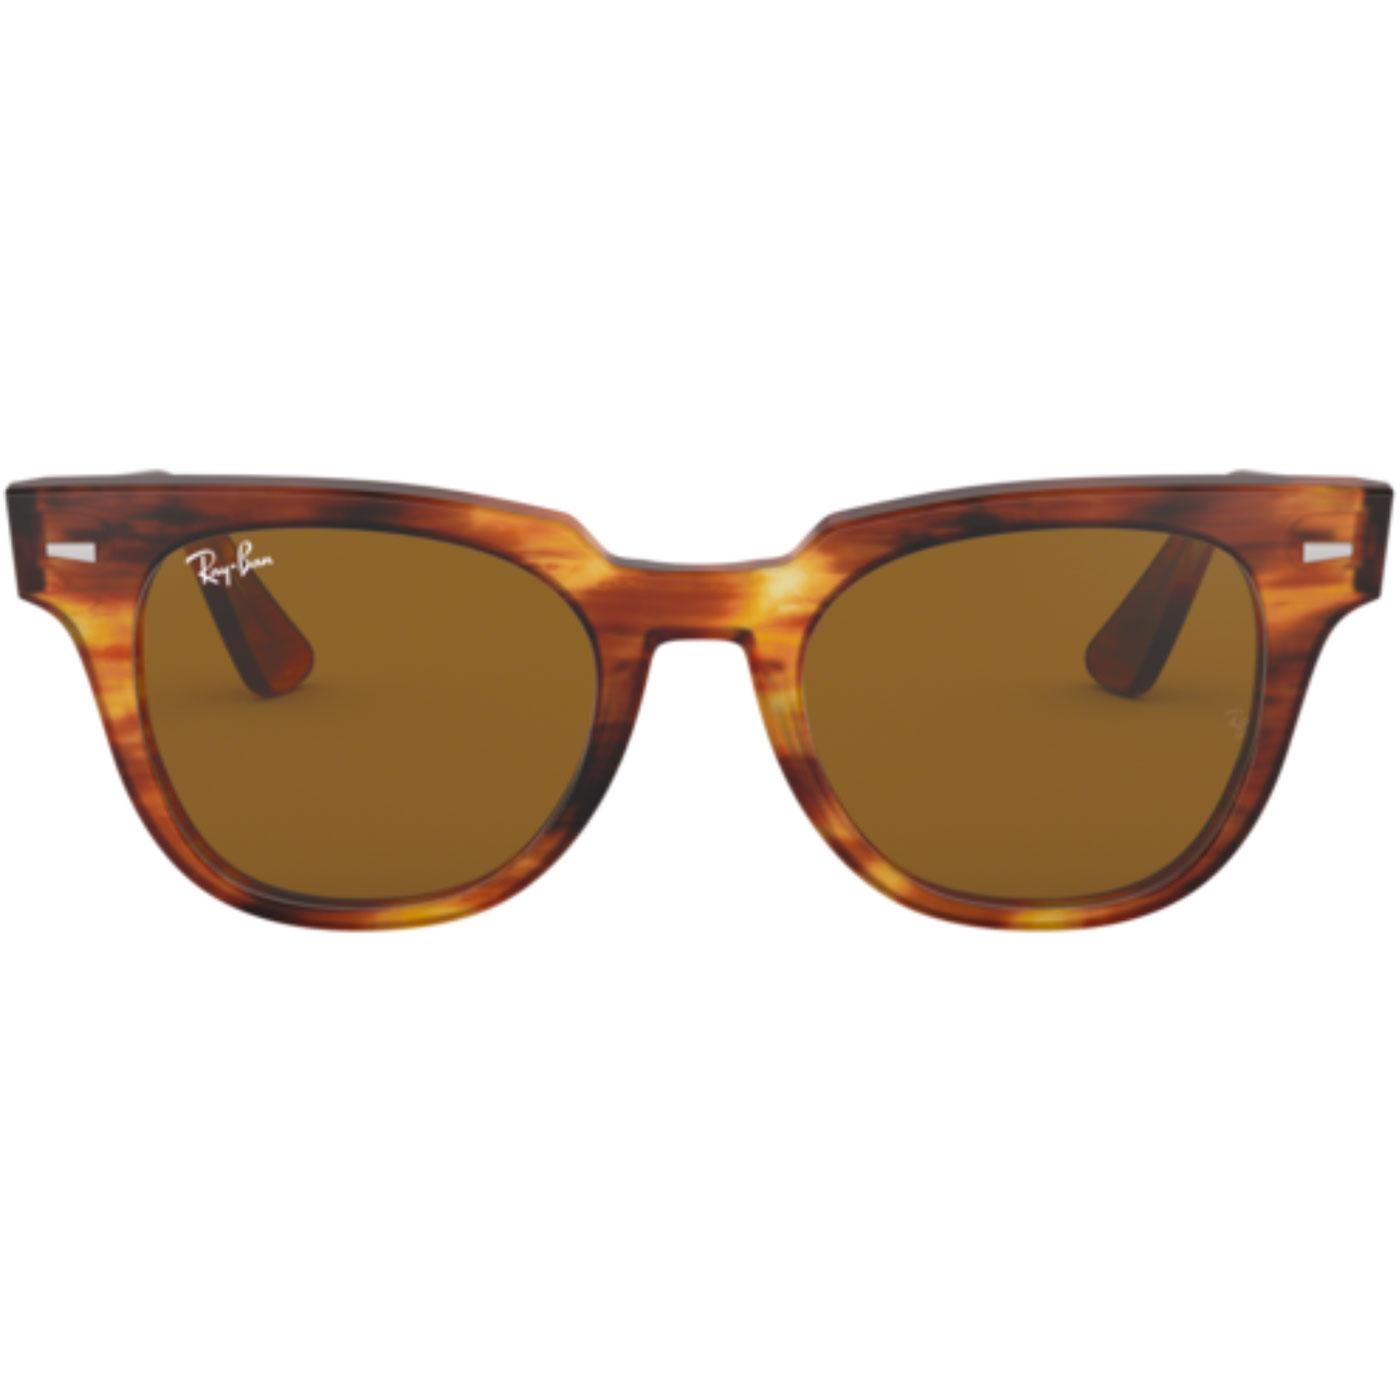 Meteor RAY-BAN Retro Wayfarer Sunglasses in Havana